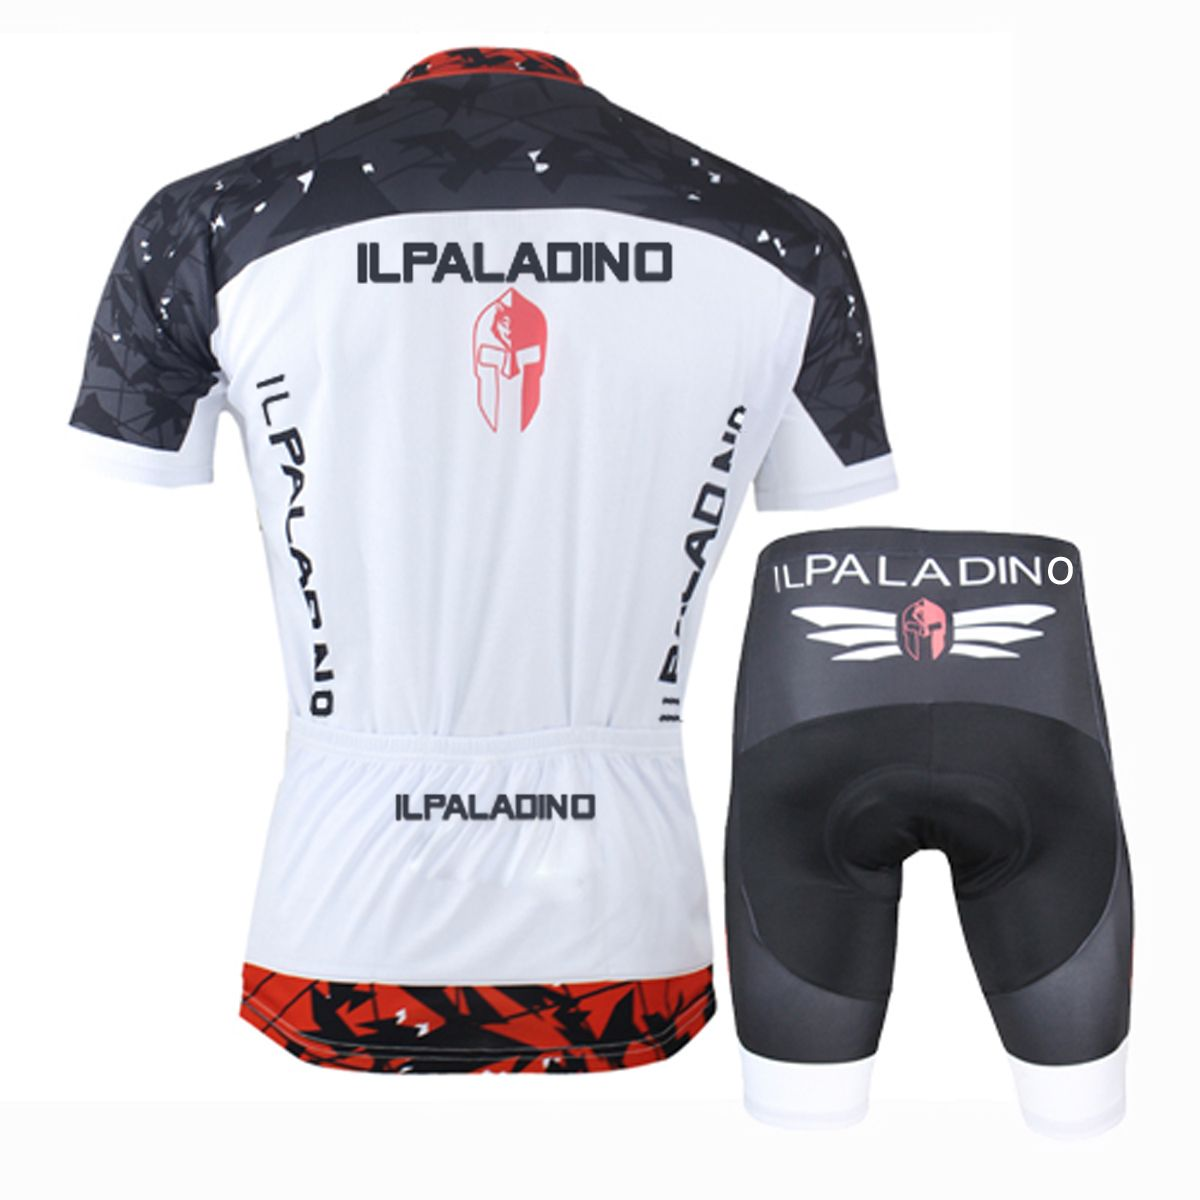 Download Cycling Jerseys, Cycling Clothing, Cycling Gear Wholesale ...